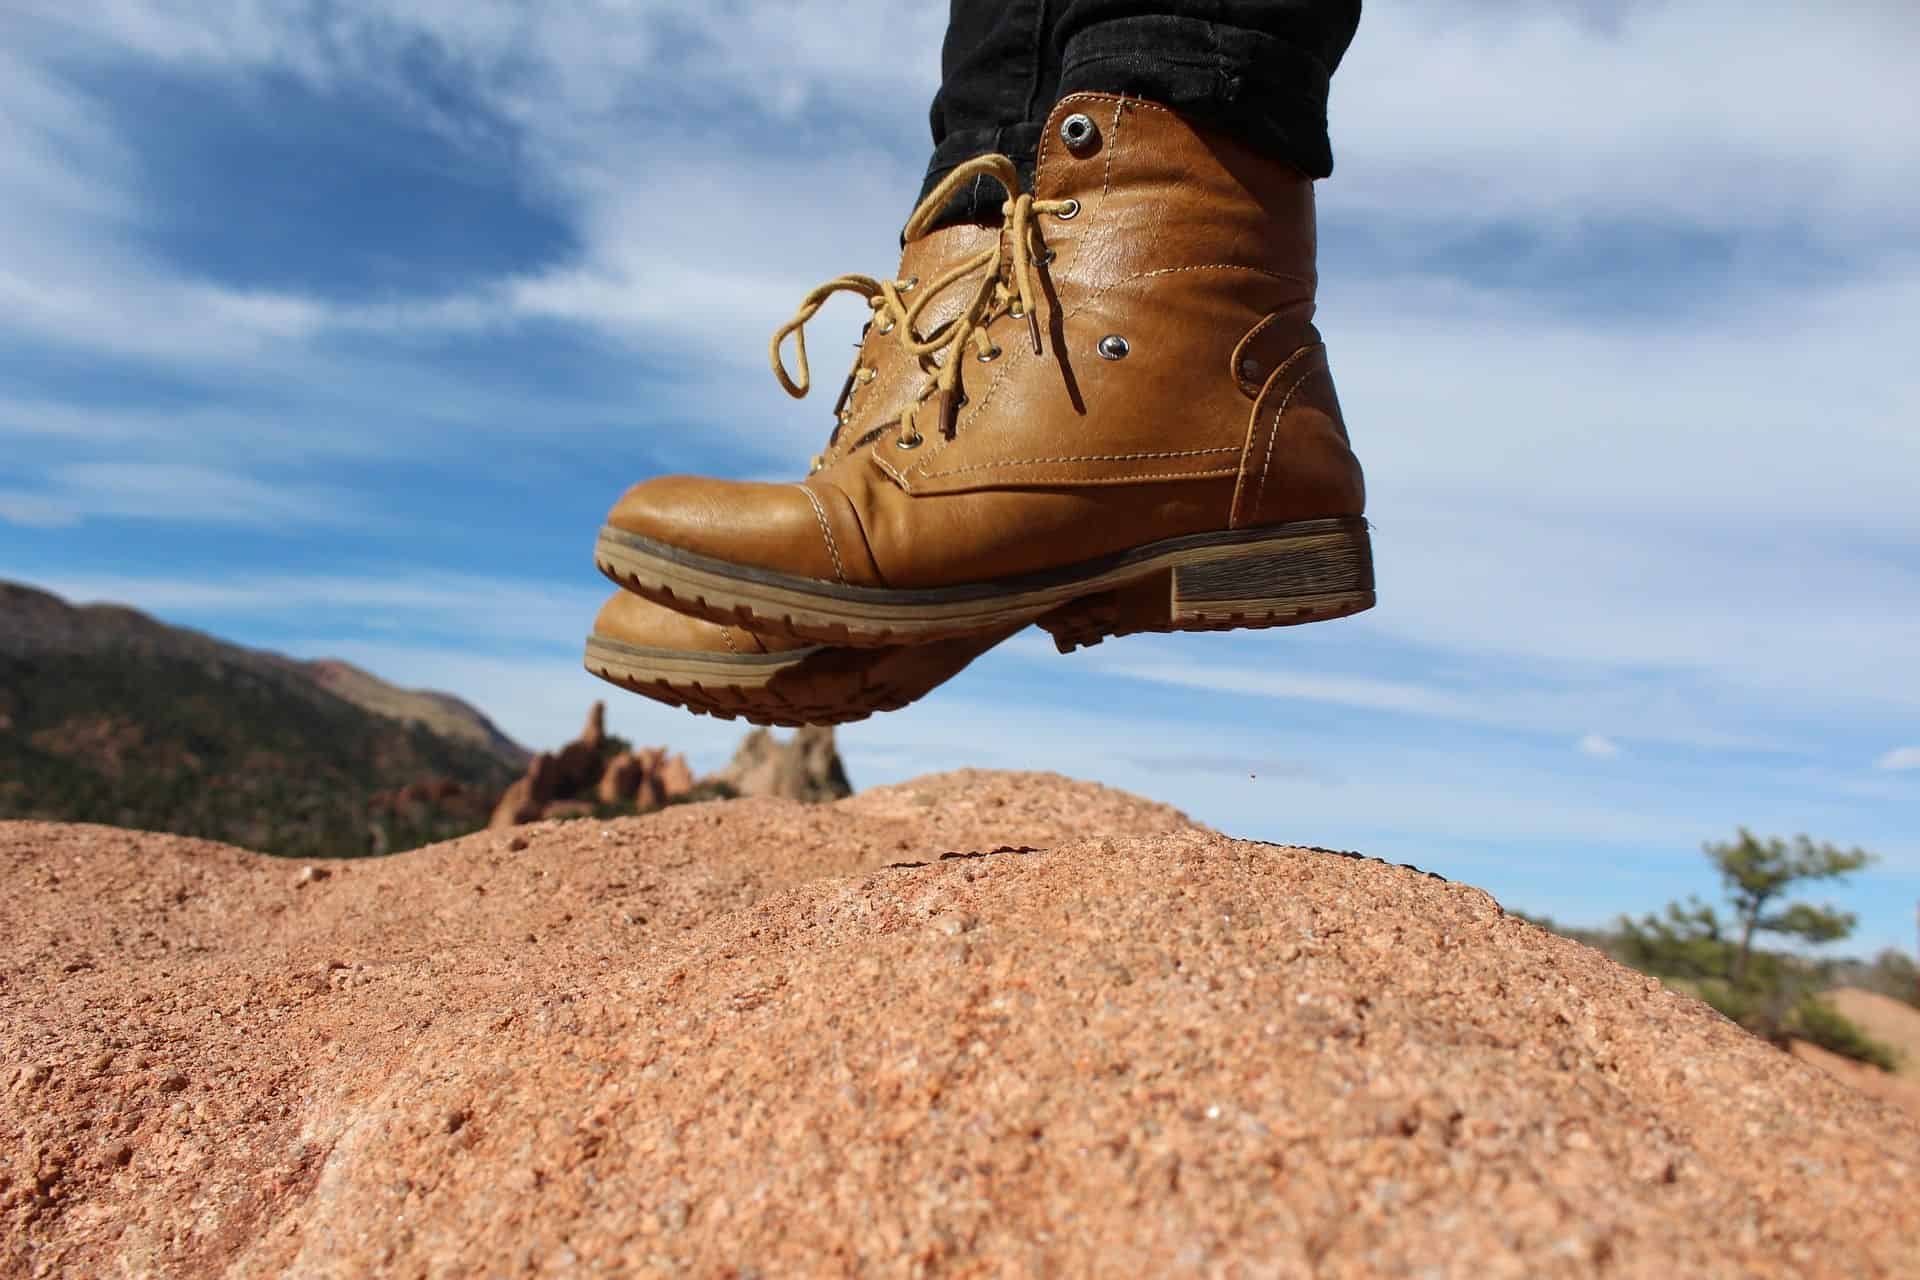 Are Insulated Work Boots Too Hot in the Summer